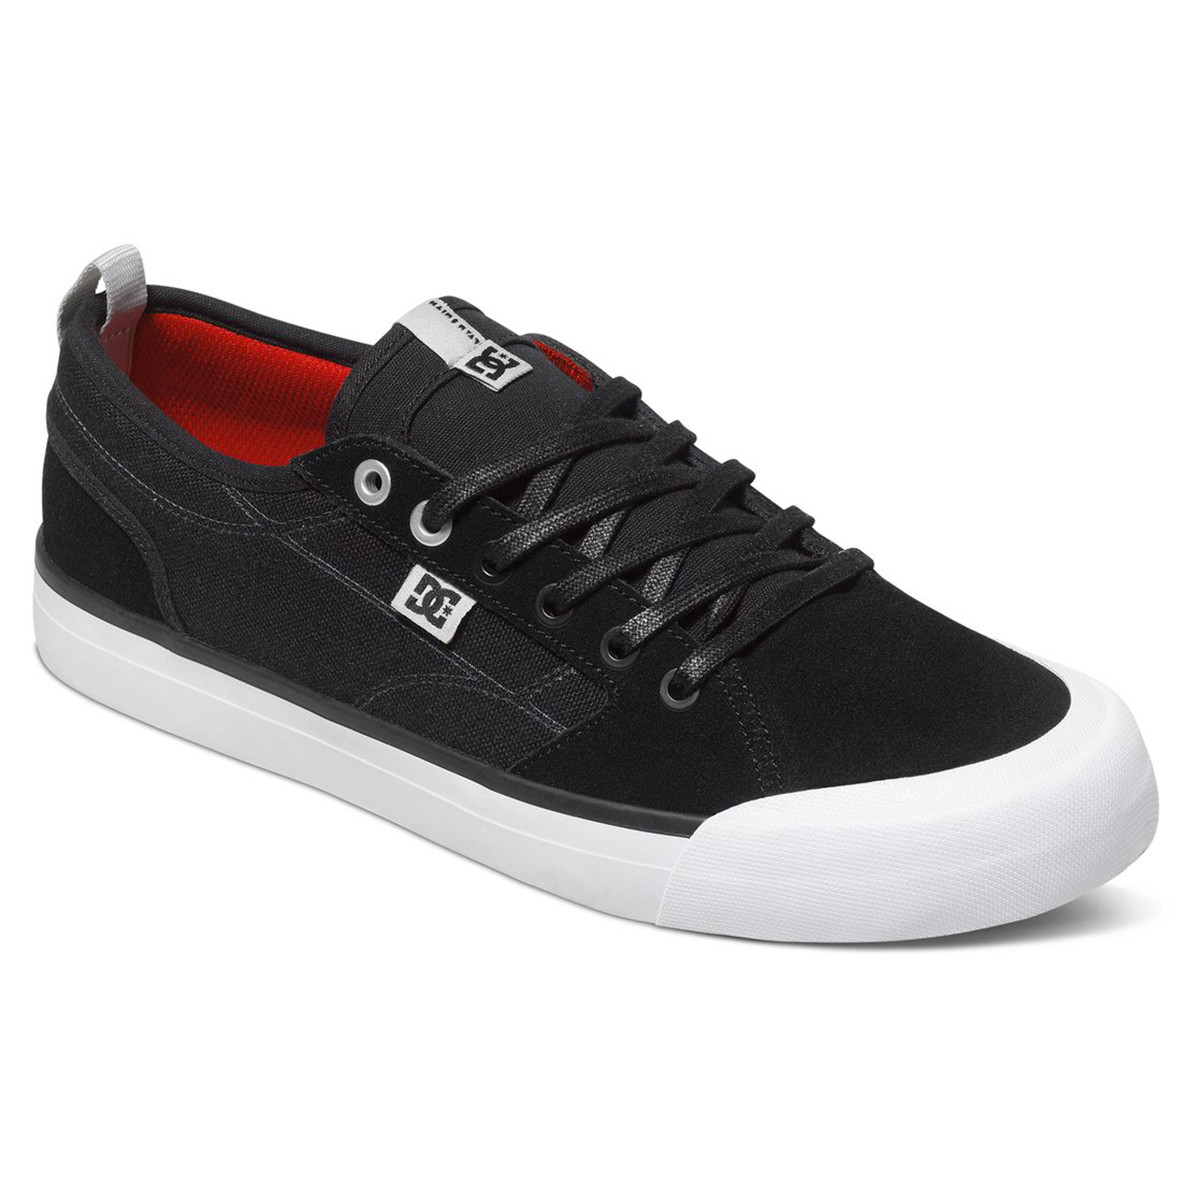 DC Shoes Evan Smith Chaussure Homme  - Chaussures Chaussures de Skate Homme